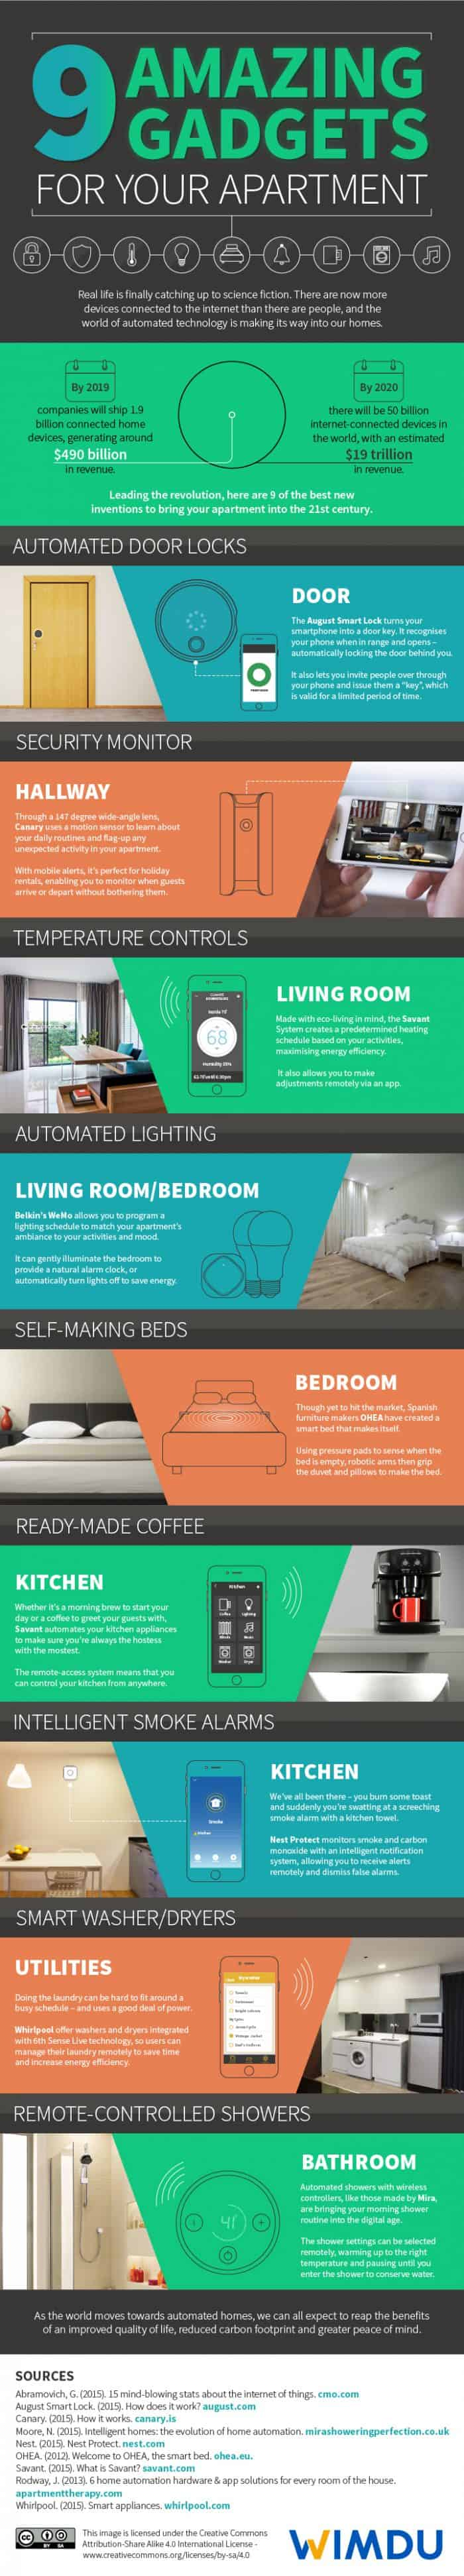 9 Amazing Gadgets for Your Apartment Infographic